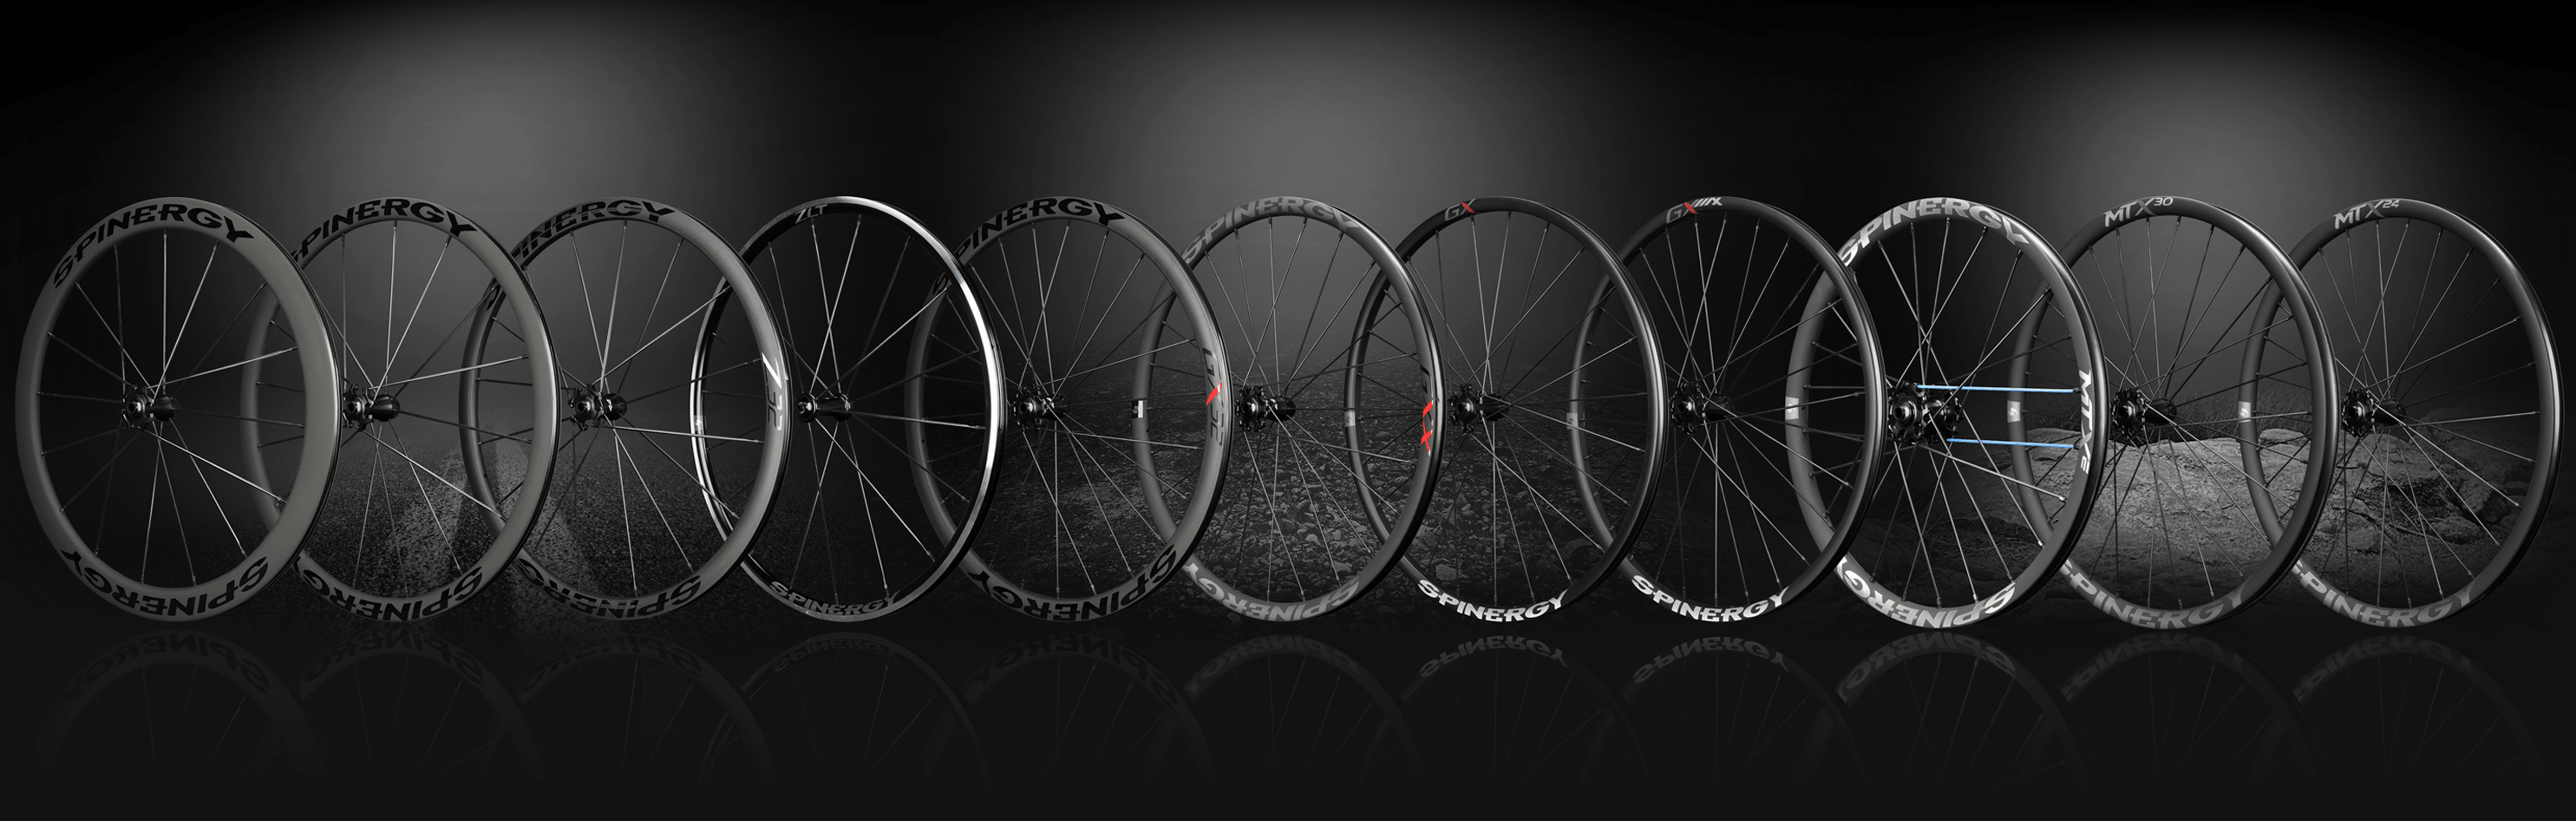 Spinergy Bicycle Wheels